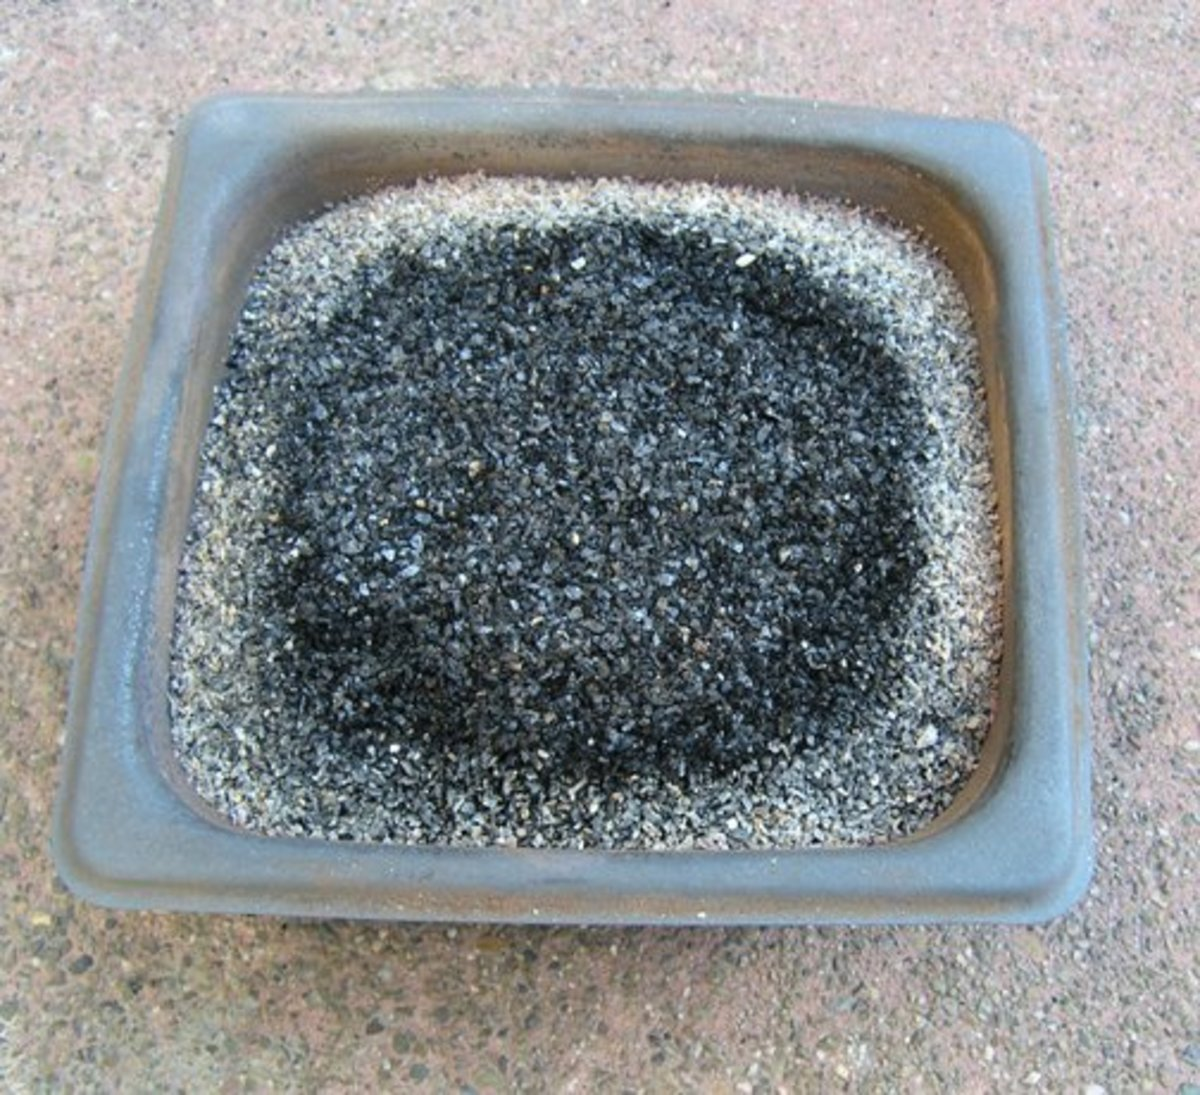 Stainless steel firing pan with ash topped activated carbon after firing